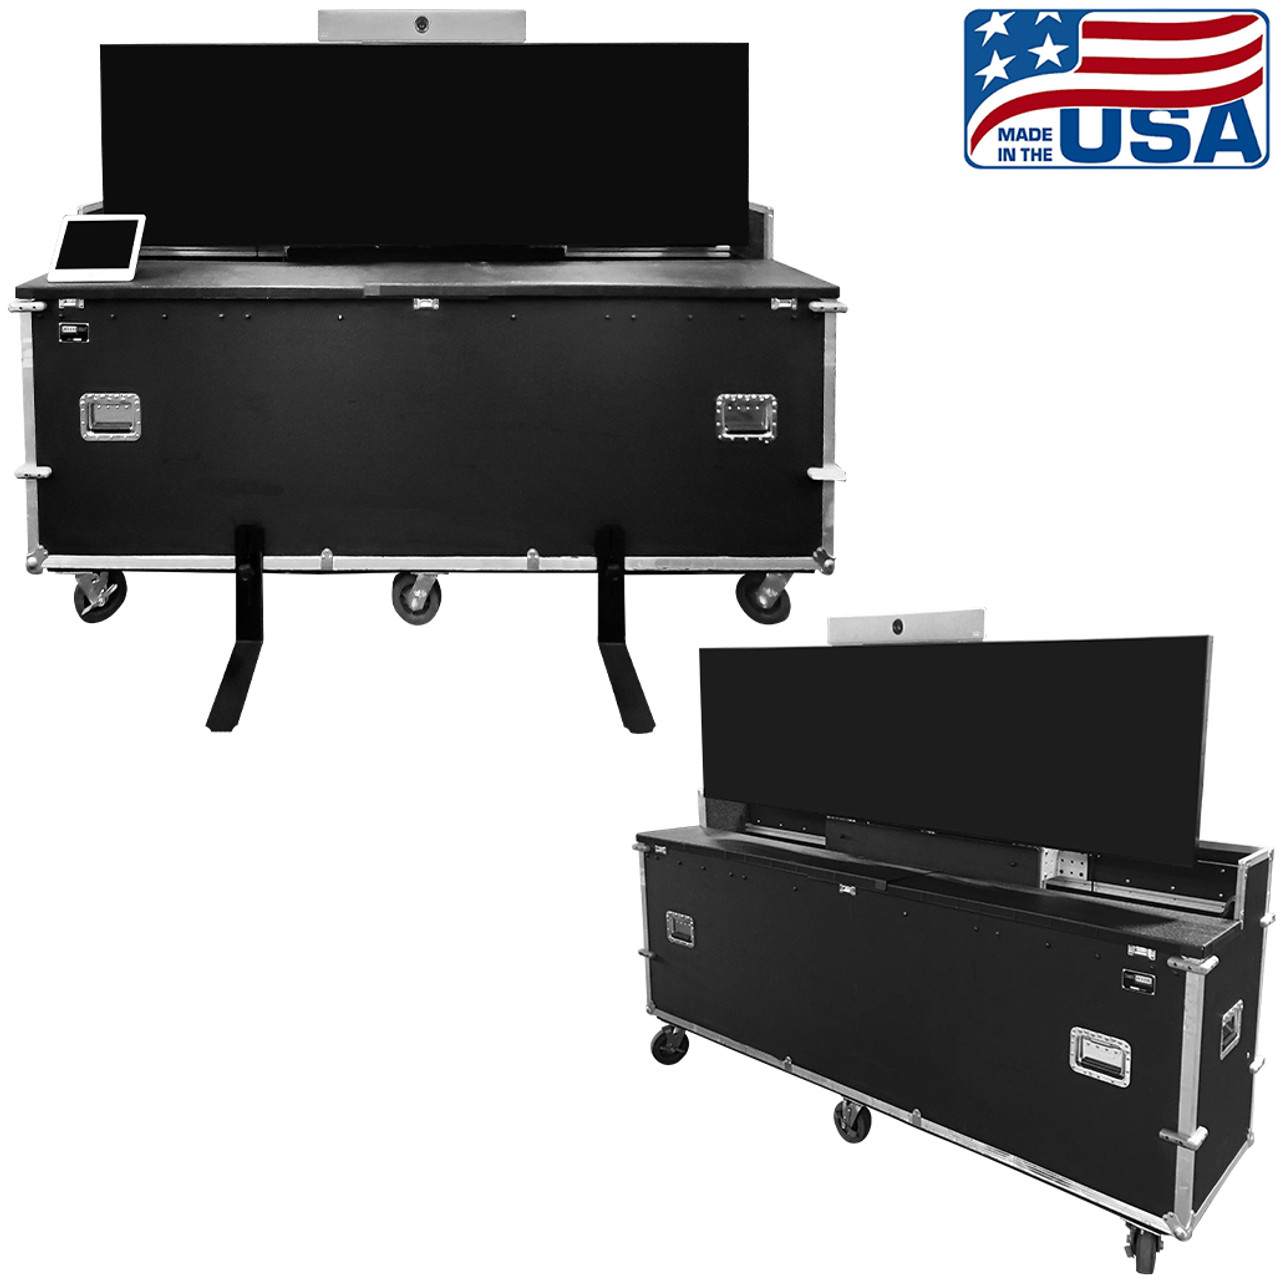 LG display 88 inch Stretch with Cisco Room Kit in an EZ-LIFT lift case for easy transport, setup, and travel